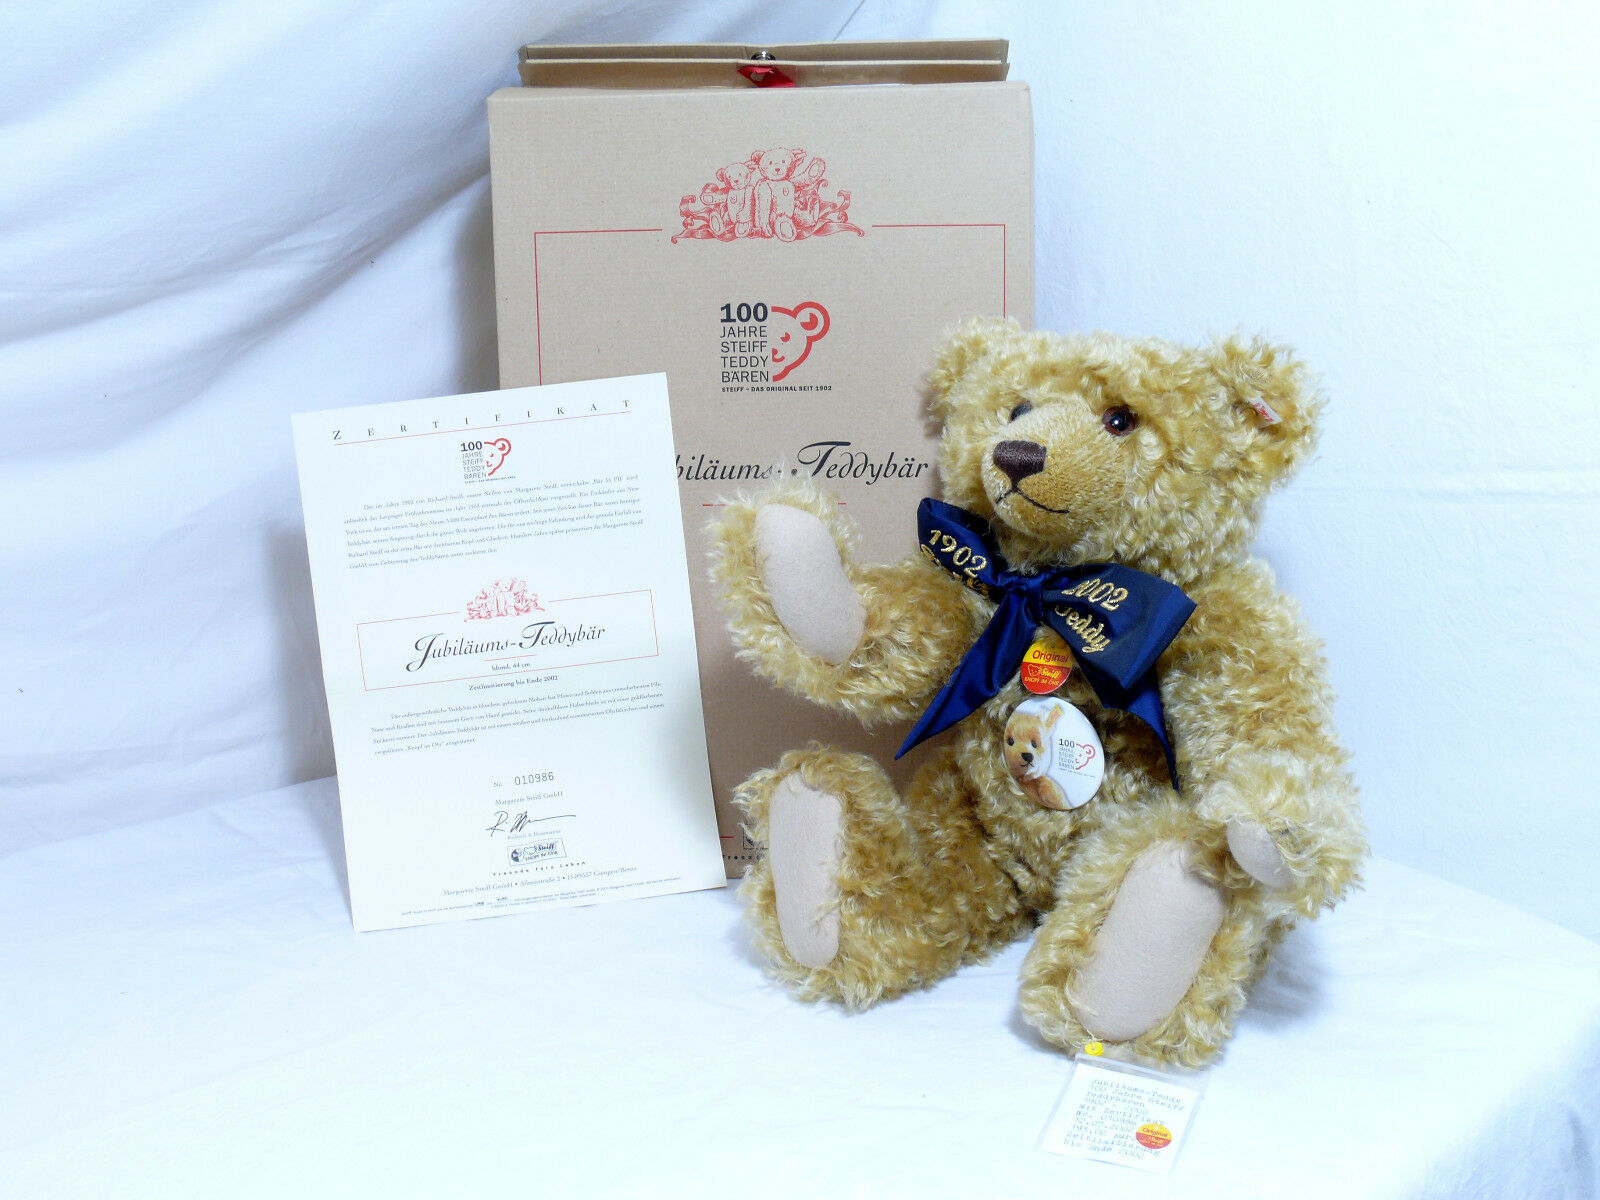 Steiff 670985 Teddy Bear 100 Jahre Steiff Teddy Bears 44 cm with Voice Boxed